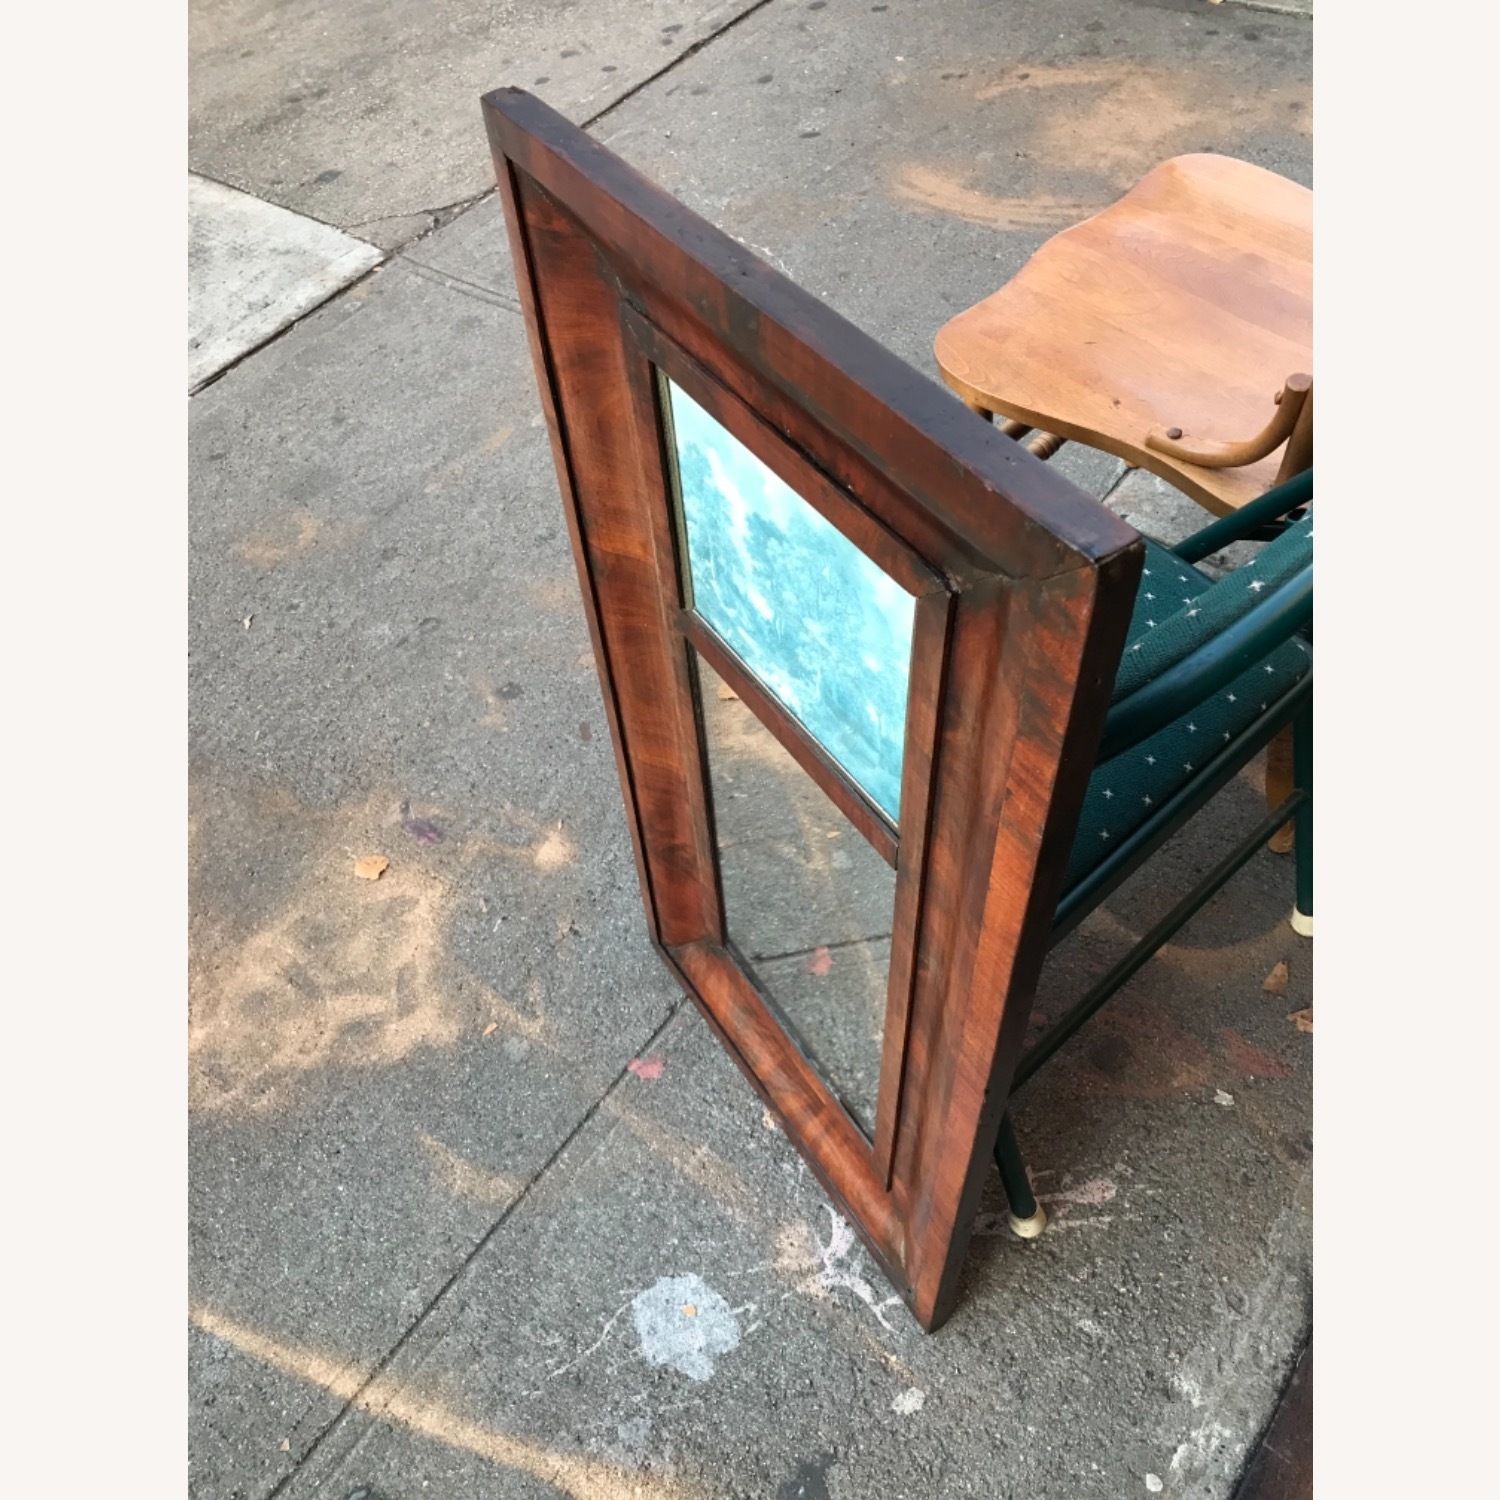 Antique 1900s Mahogany Framed Mirror w/ Picture - image-5